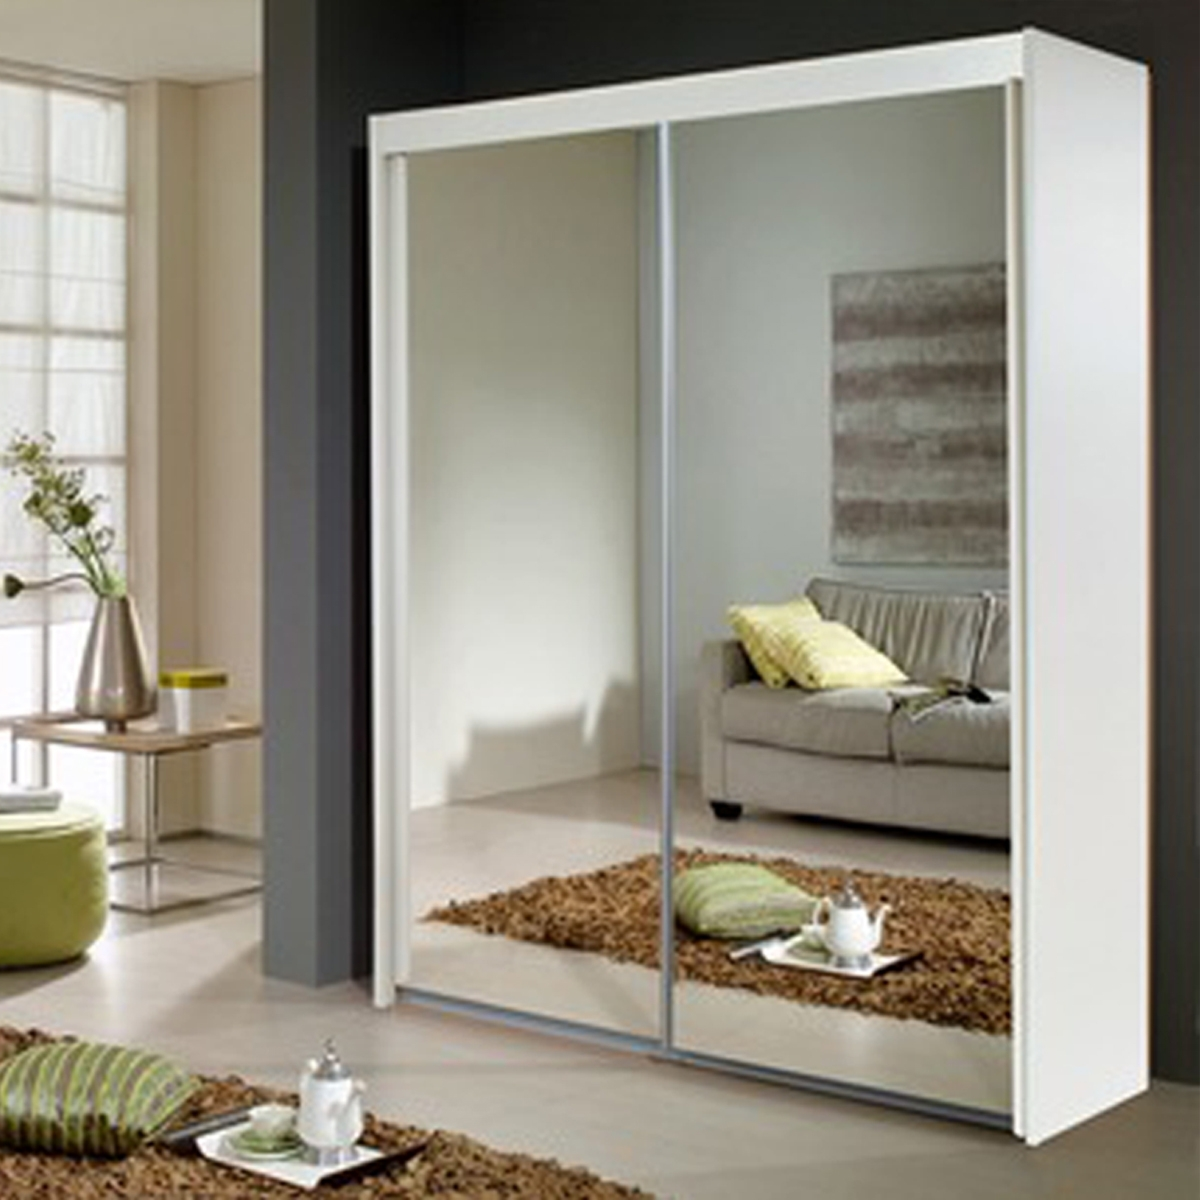 Double Mirrored Wardrobes Inside Popular Sliding Door Mirrored Wardrobe From The House Of Reeves Croydon (View 4 of 15)